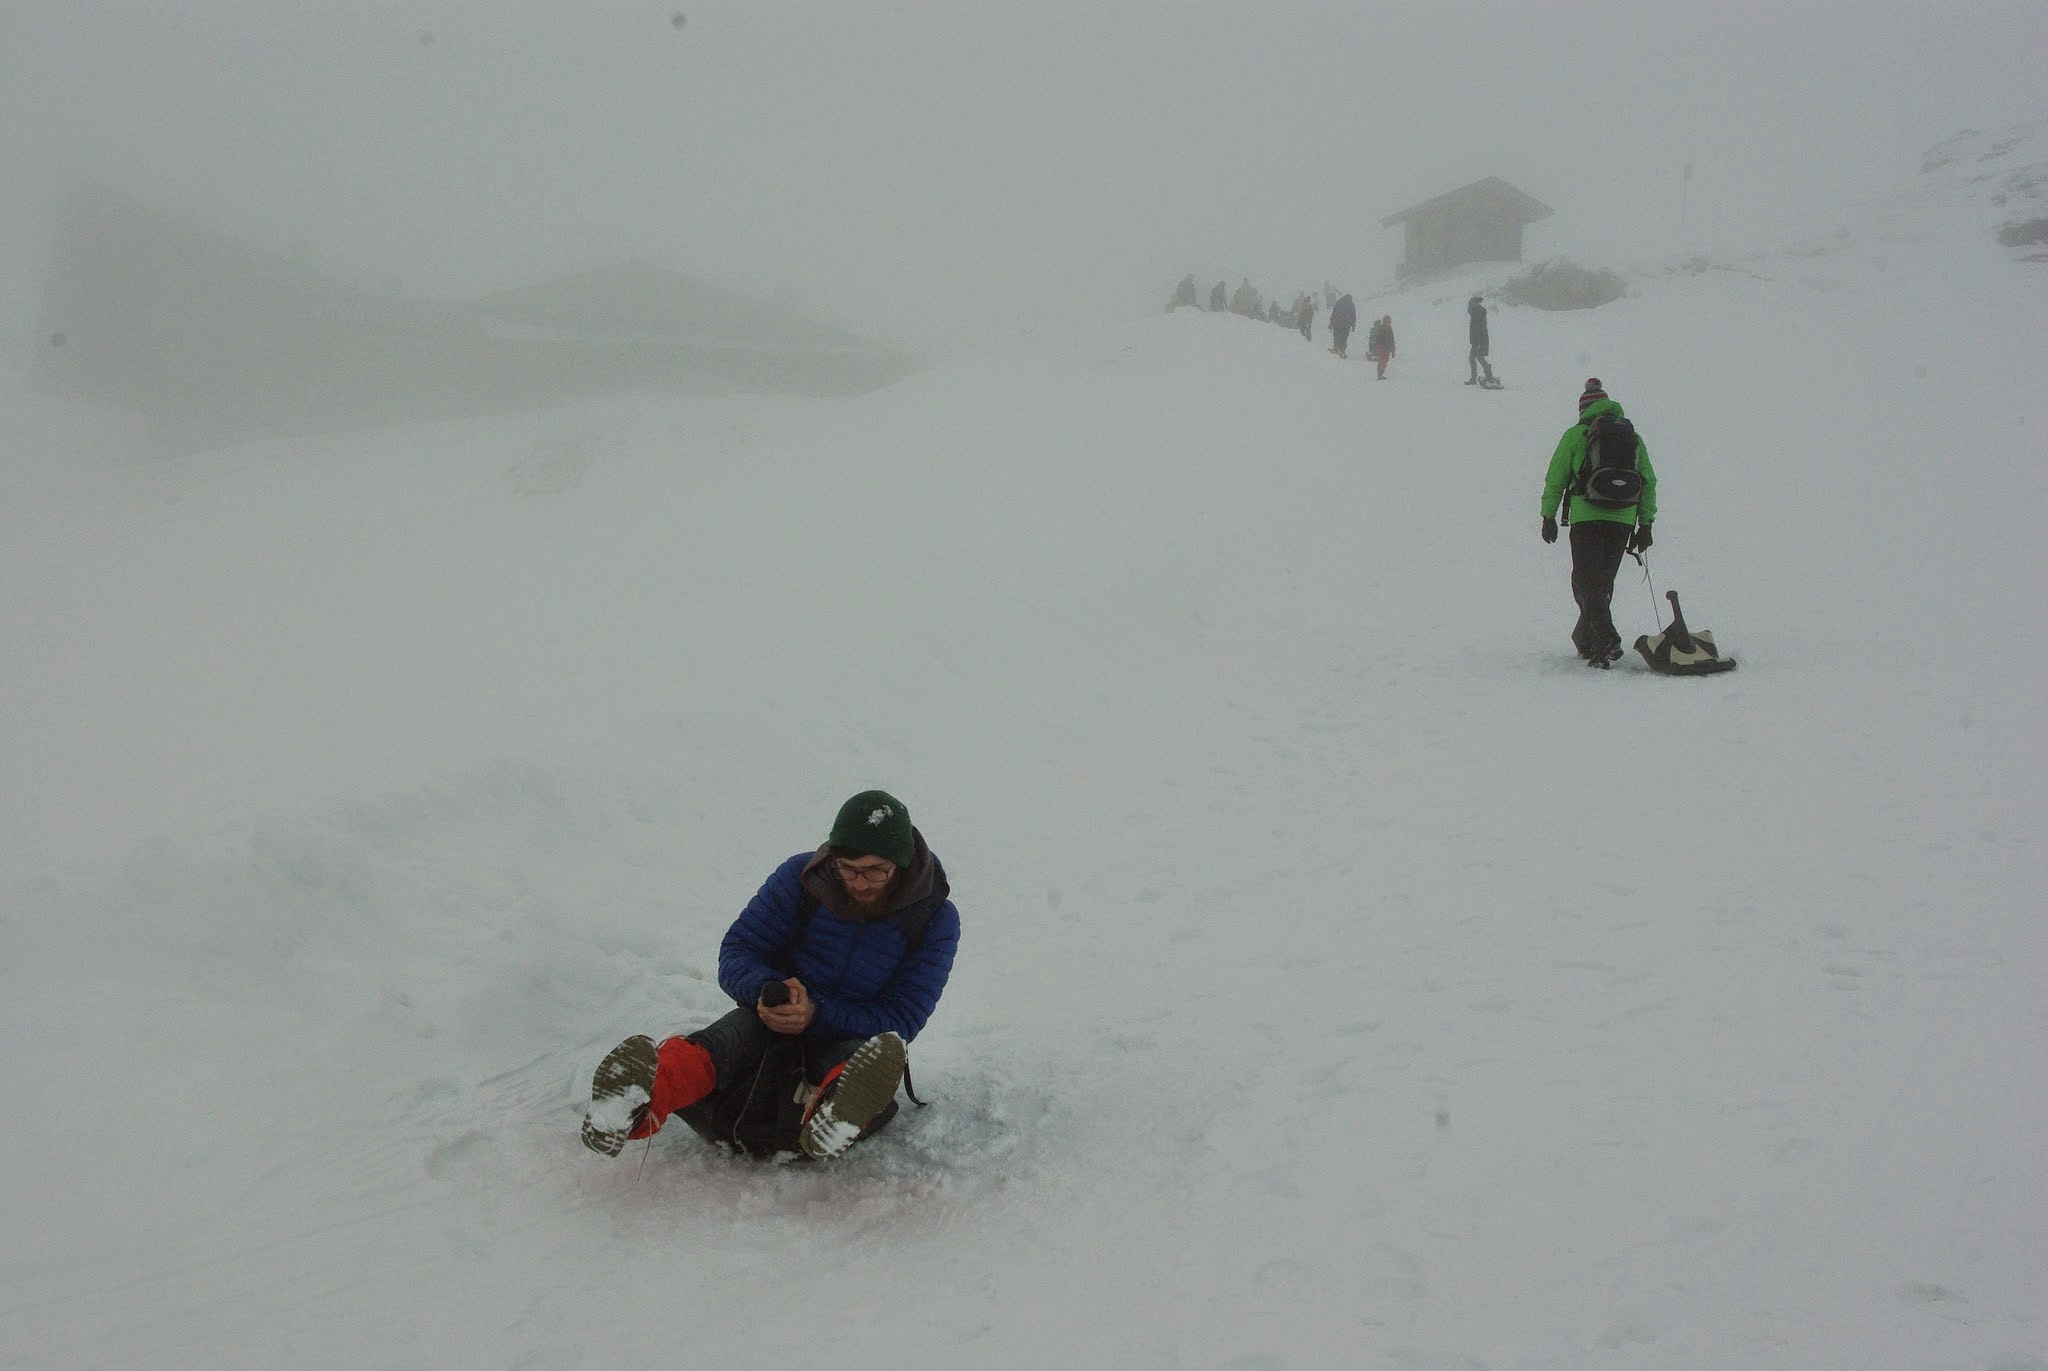 But that was fine with us because the conditions were perfect for using the free sleds!